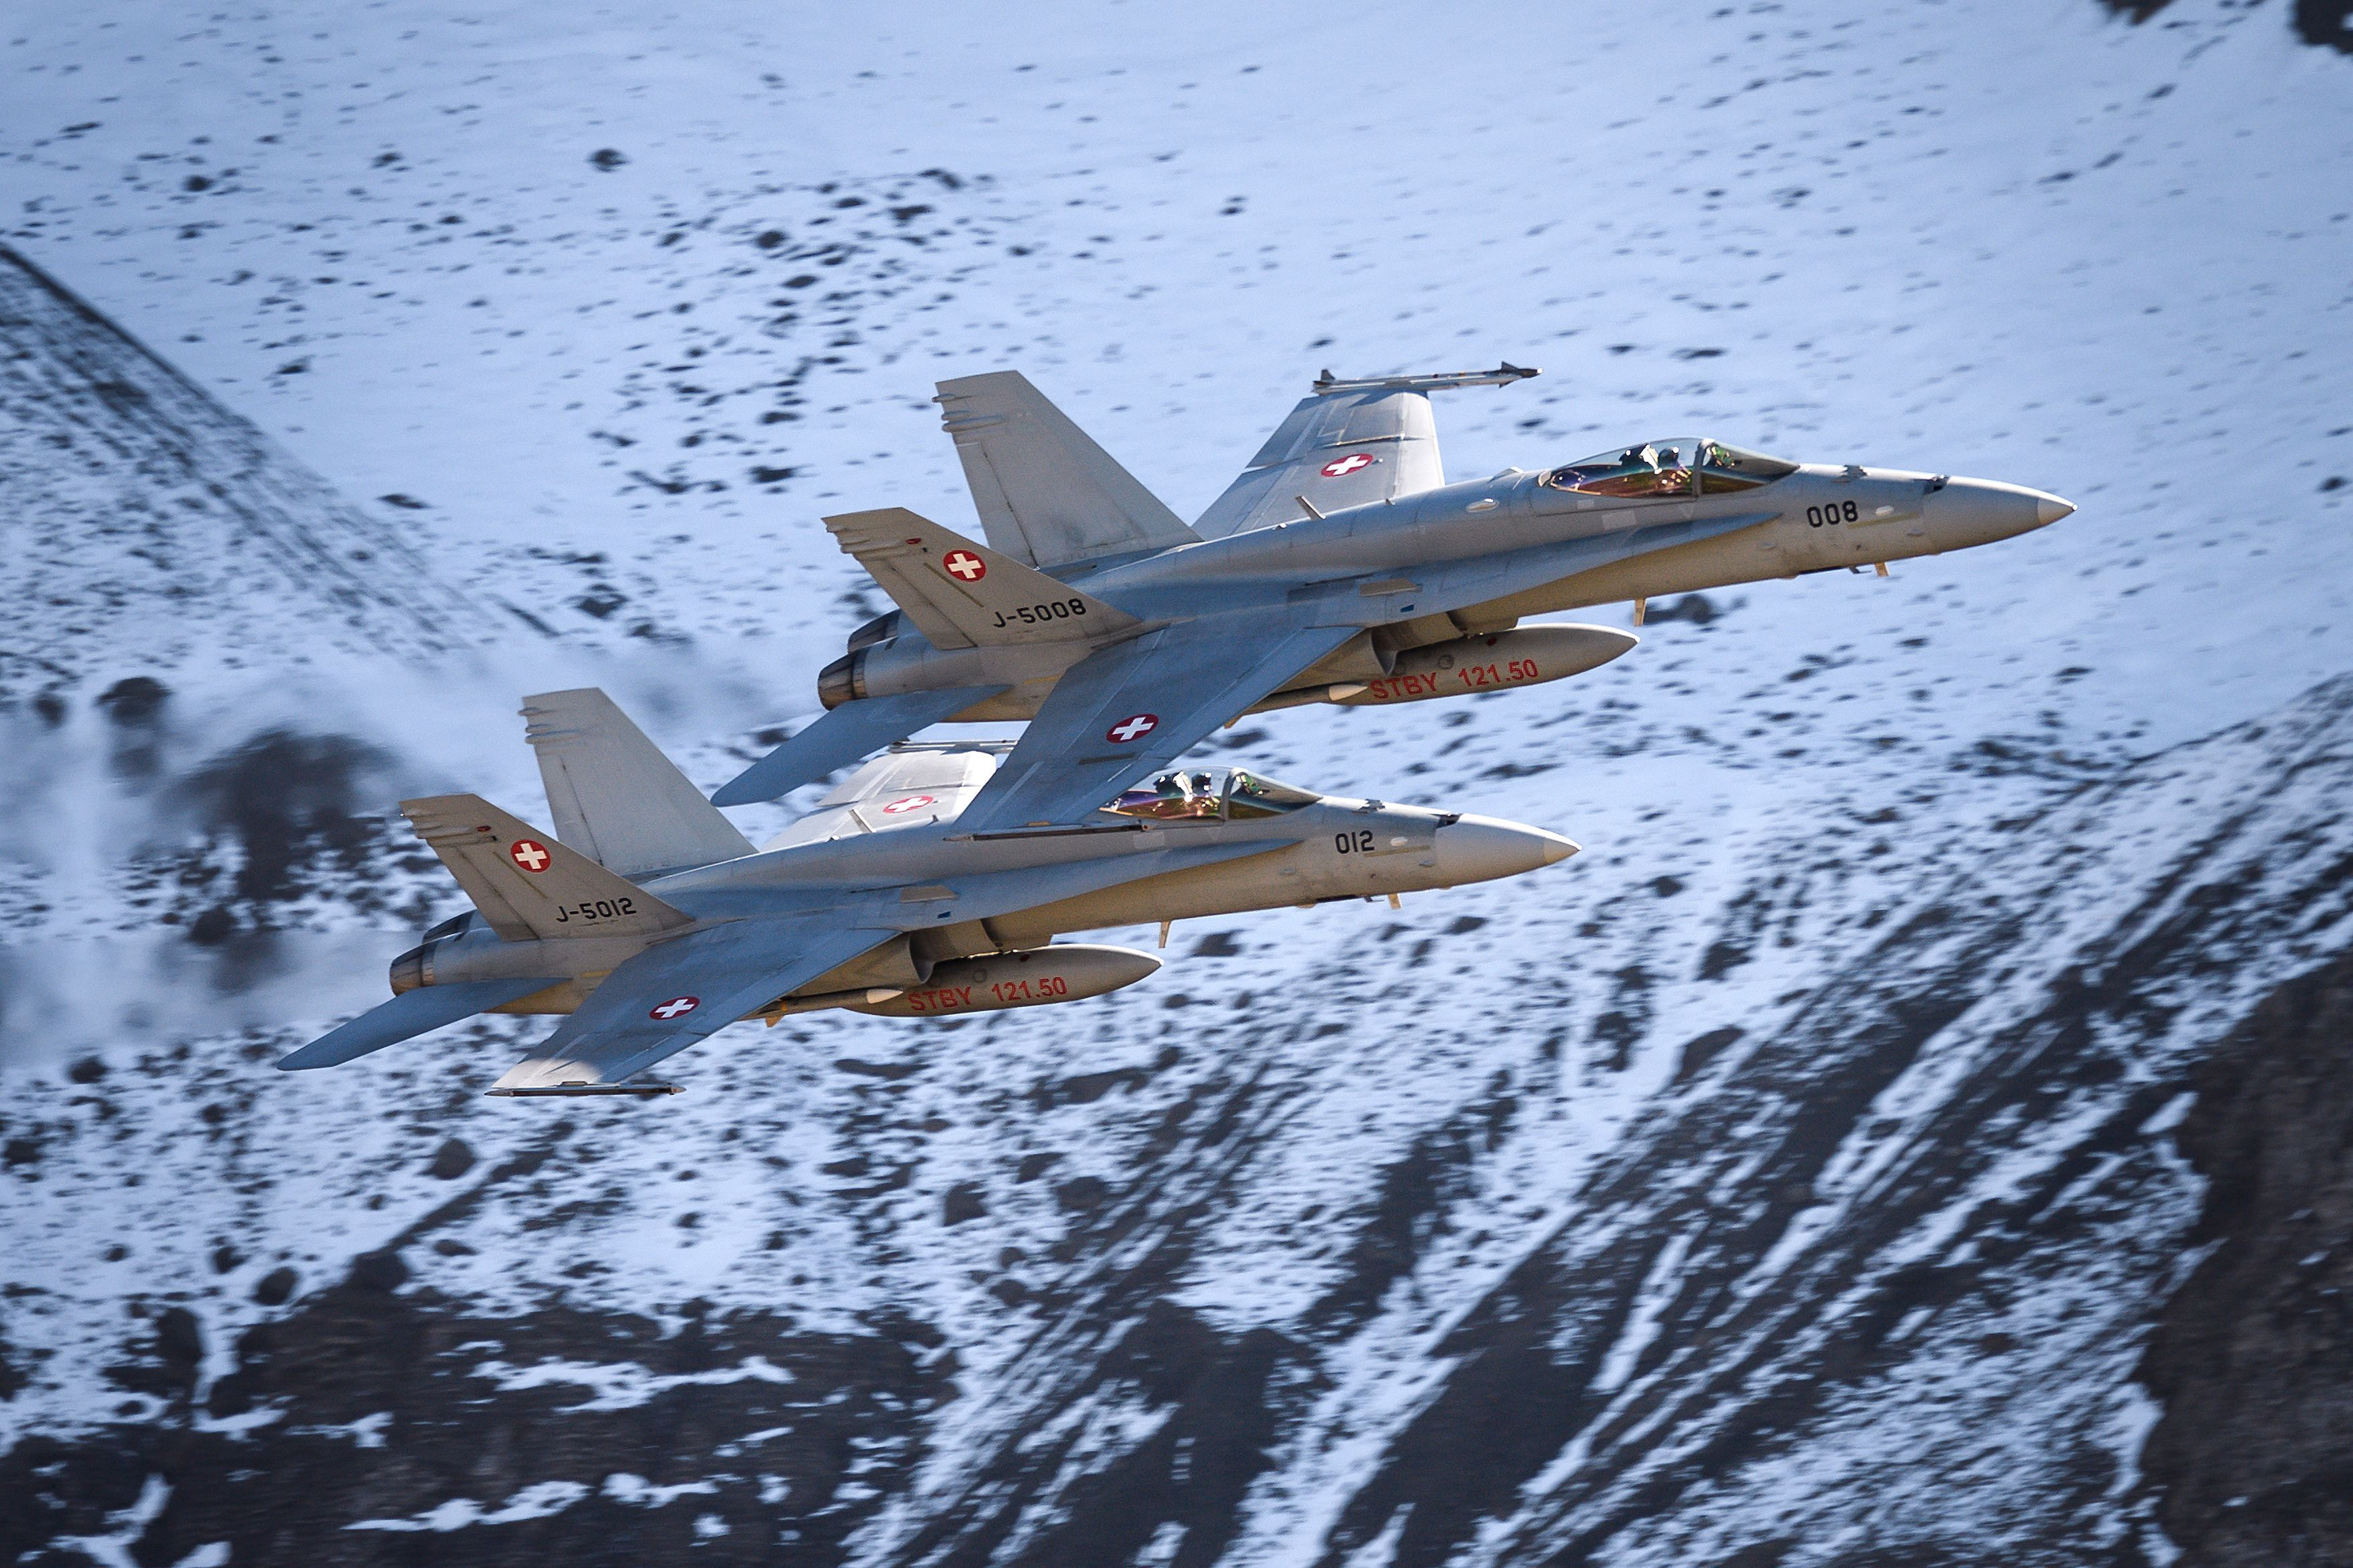 Switzerland Hasn't Gone to War in 200 Years. Why Does It Need New Fighter Jets?